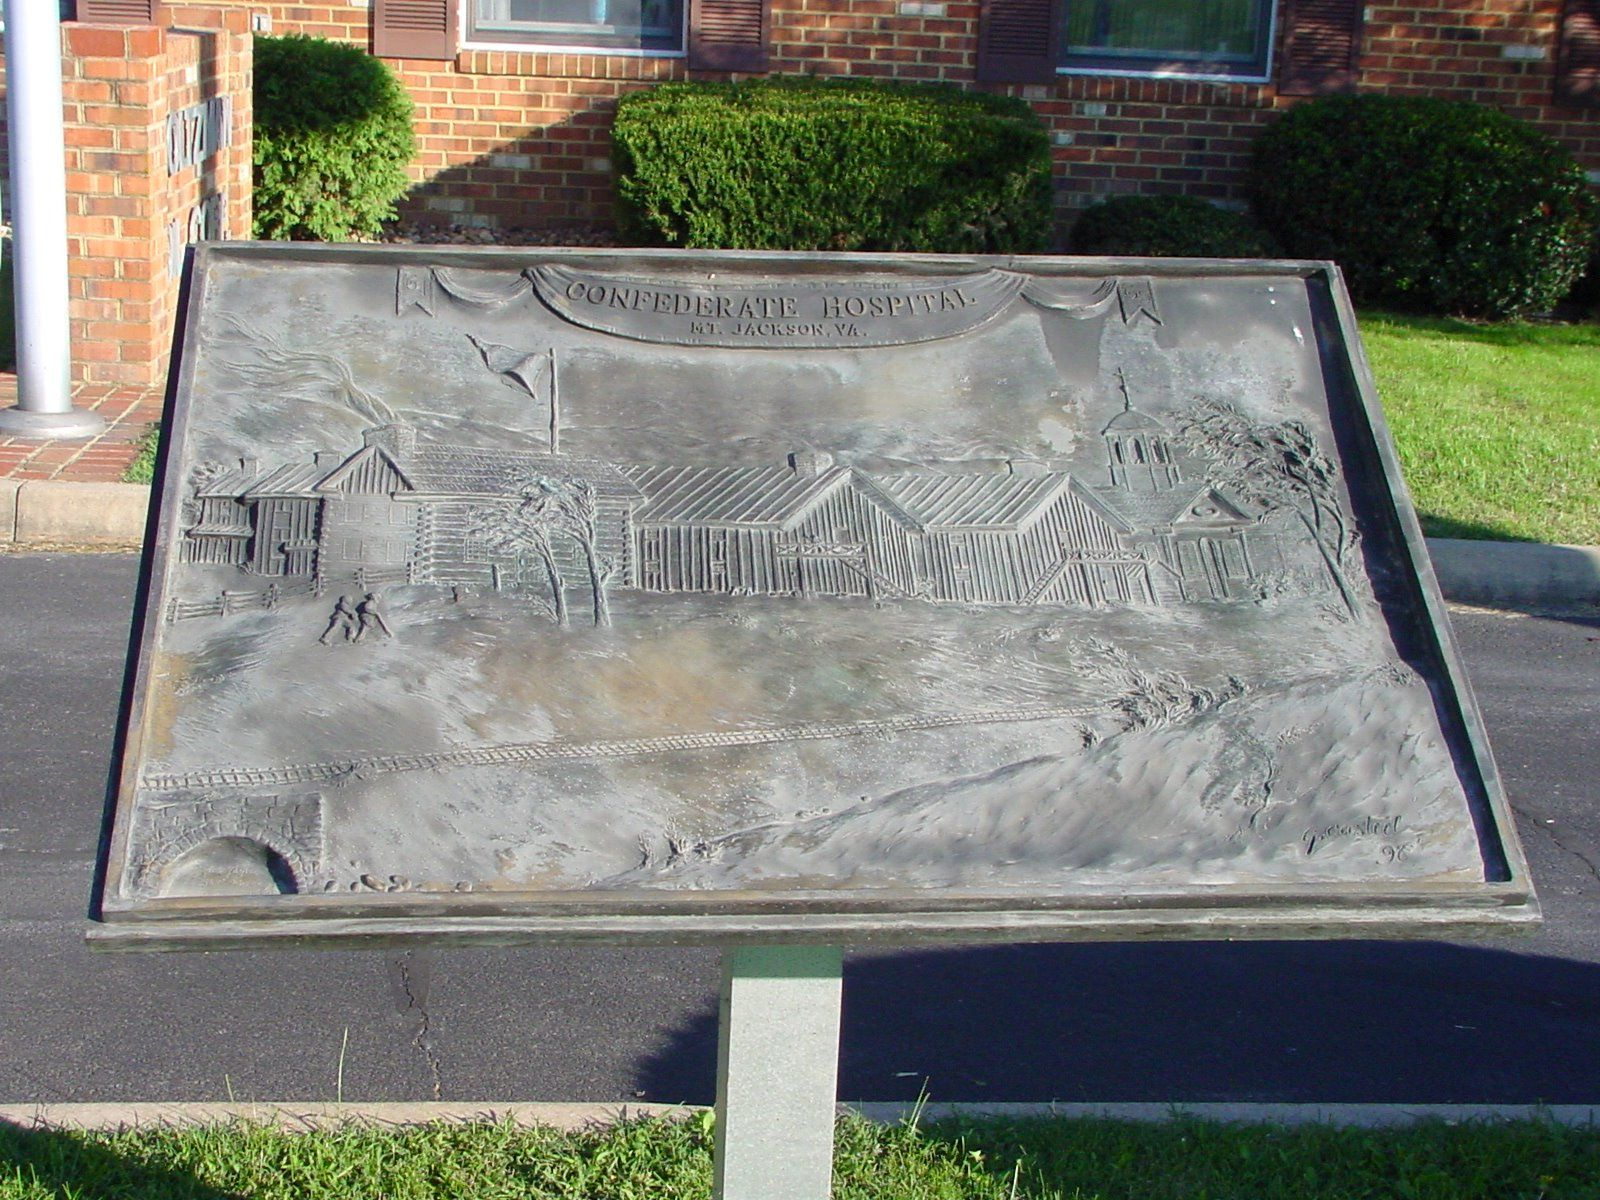 Confederate Hospital Bas-Relief Brass Tablet